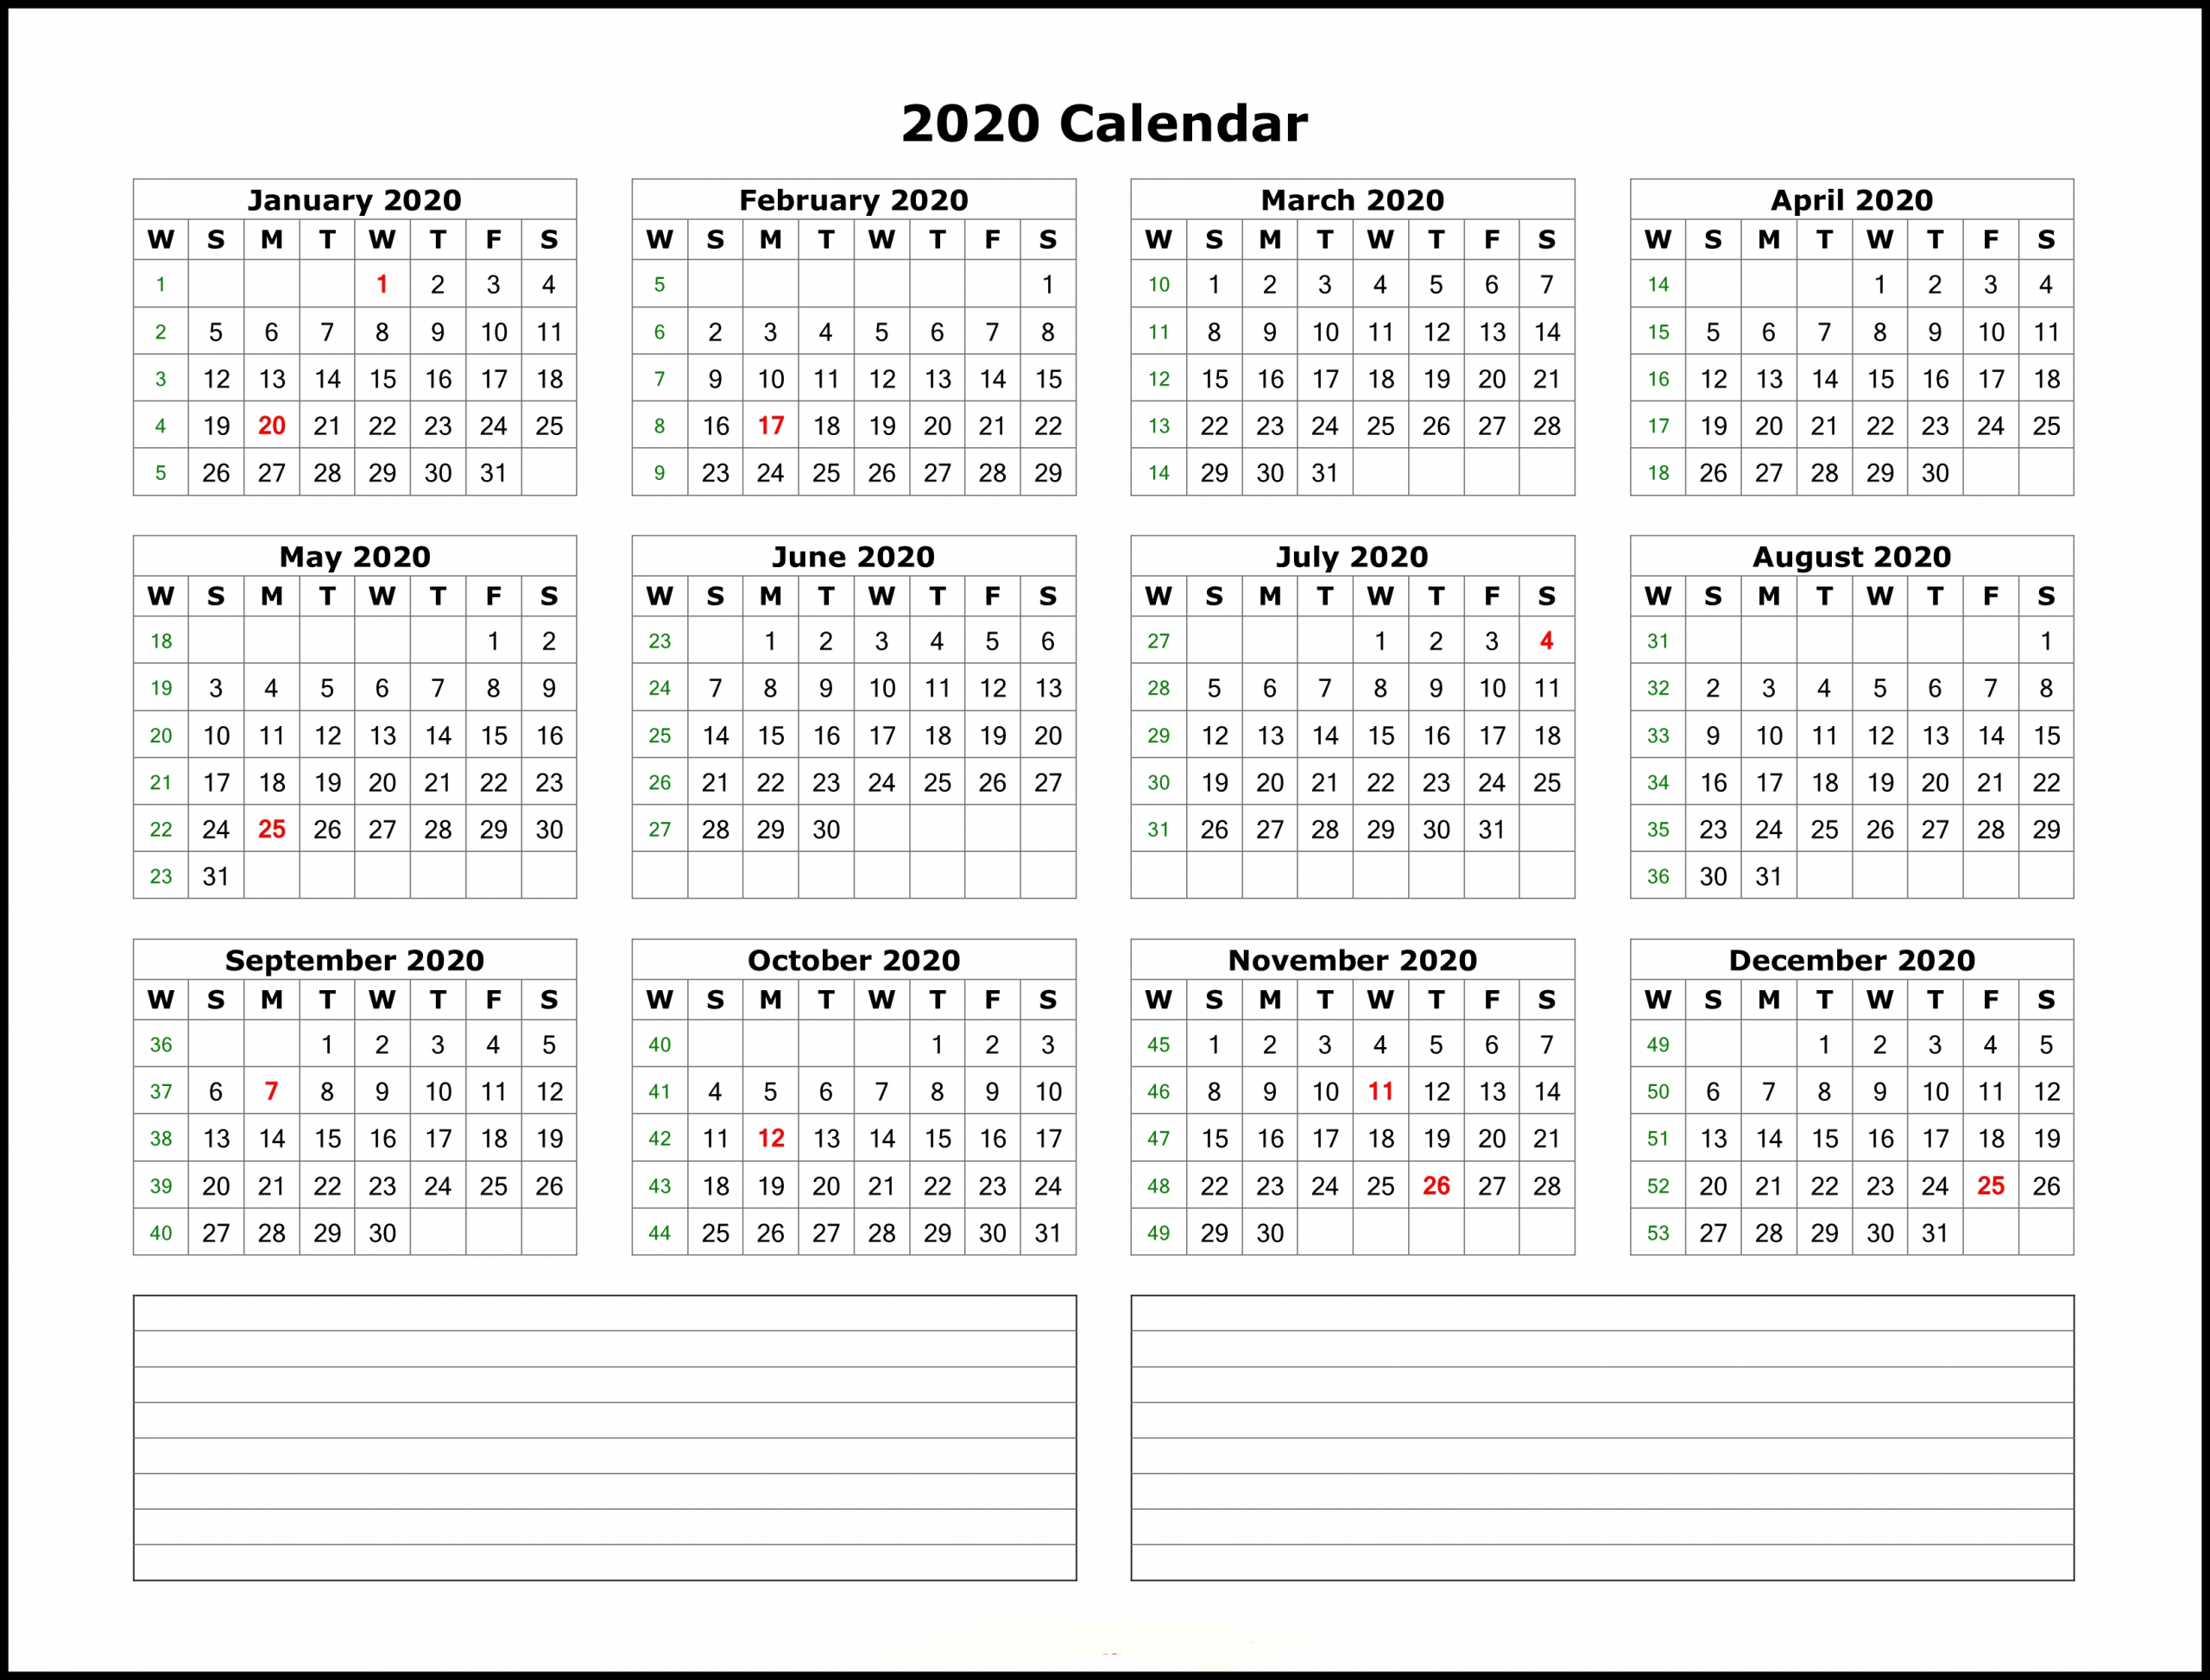 Printable 2020 Calendar With Notes | Free Printable Calendar pertaining to Free Printable Calendar With Space To Write